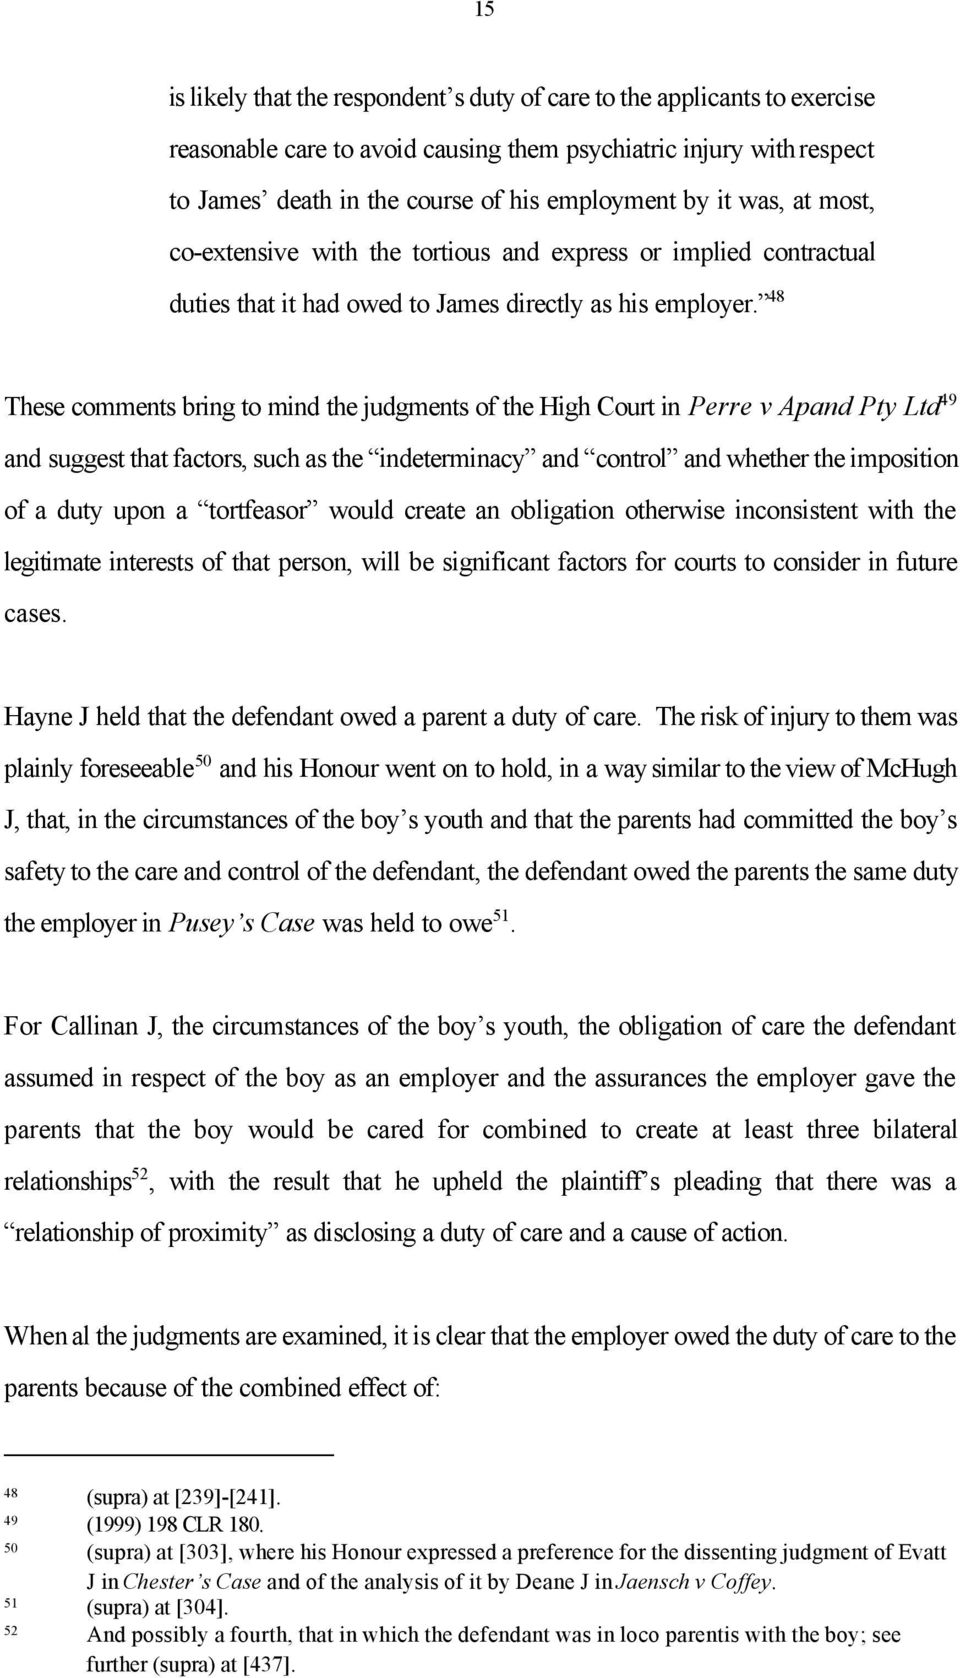 48 These comments bring to mind the judgments of the High Court in Perre v Apand Pty Ltd 49 and suggest that factors, such as the indeterminacy and control and whether the imposition of a duty upon a